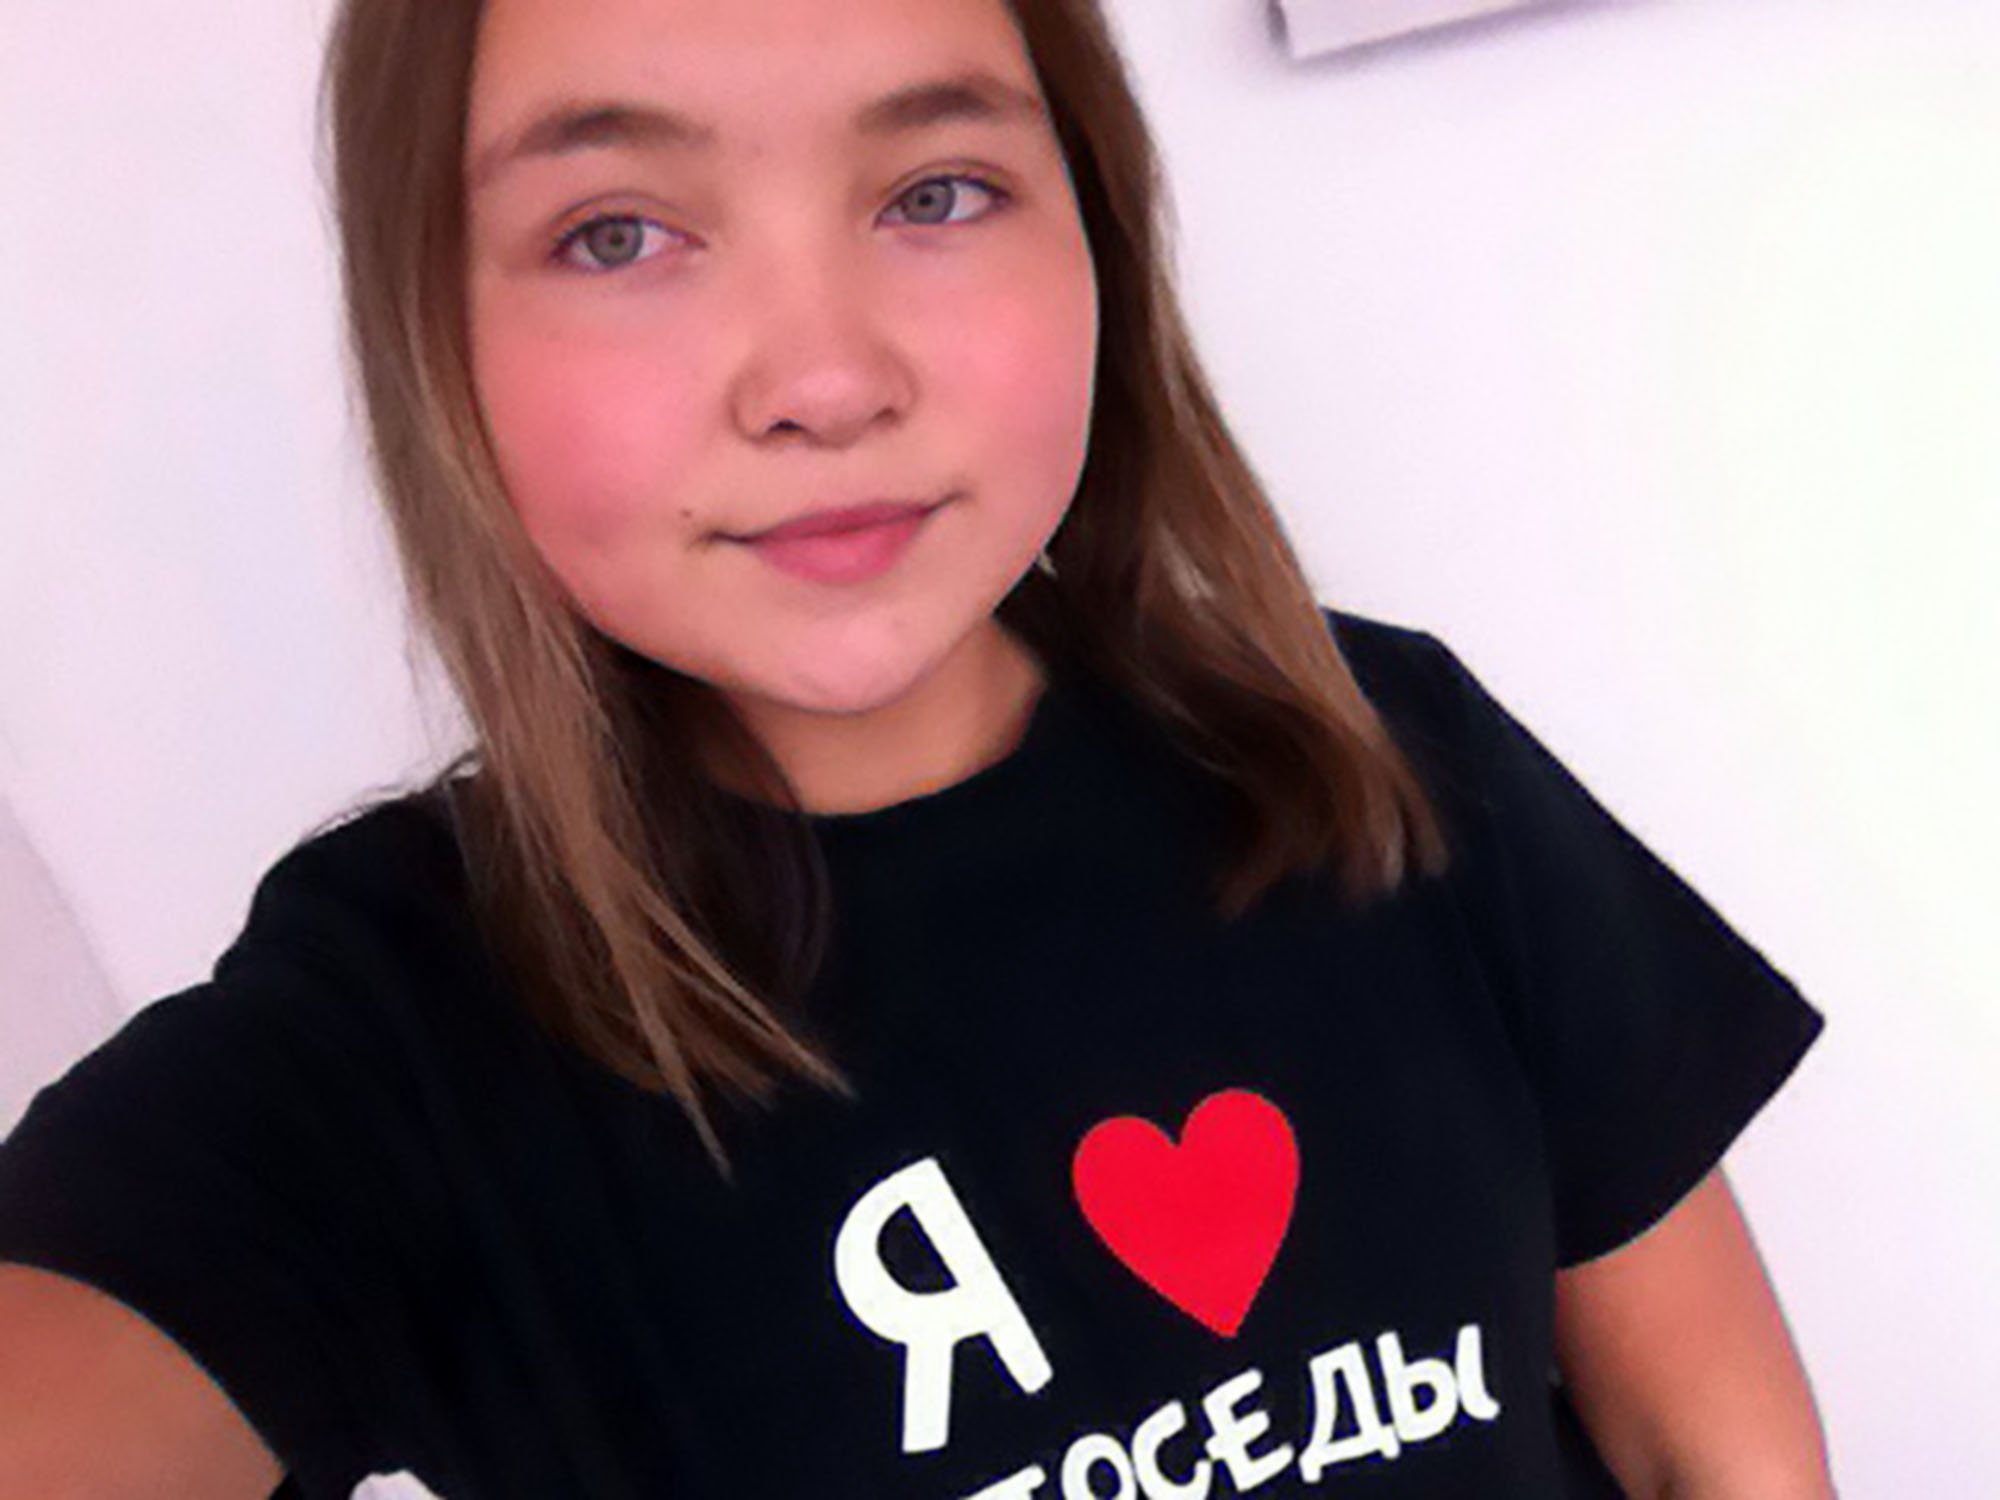 """Pic shows: The last two selfies of the girl; A schoolgirl who climbed over a ledge on the 17th¿floor of a block of flats to take a cool selfie sent a dangerous looking snap to her friend an instant before she fell to her death. The tragedy happened in the city of Perm in central Russia's Perm Krai region. Shortly before the tragedy the 12-year-old schoolgirl named as Oksana B. had even written a note to her best friend on her Vkontakte (the Russian Facebook-like social network) account telling her she how great she was and how special their friendship was. She had then wanted to apparently send a picture, and after saying goodbye to her mum and telling her she was going for a walk, instead went up to the seventeenth floor of of her block of flats, where she then took a call self posted it standing on the other side of the rooftop balcony. The friend noticed that the picture seems to be particularly dangerous had then tried to call Oksana back, and when she couldn't reach her, had sent the picture to her mum. But by then it was too late, as she had already fallen and her body had been spotted by passers-by. They in turn raise the alarm with police, and her mother had been informed. Police believe the schoolgirl lost her balance while sitting on the handrail and fell. The dead girl's uncle posted on social media: """"She was such a friendly girl. She was a good pupil, she had no problems at school. She took dance classes and English classes. She had so much to live for and now she has lost her life to the craze of looking for extreme selfies for social media. There can be no other reason why she climbed over the damned handrail."""" The police are investigating the tragedy."""